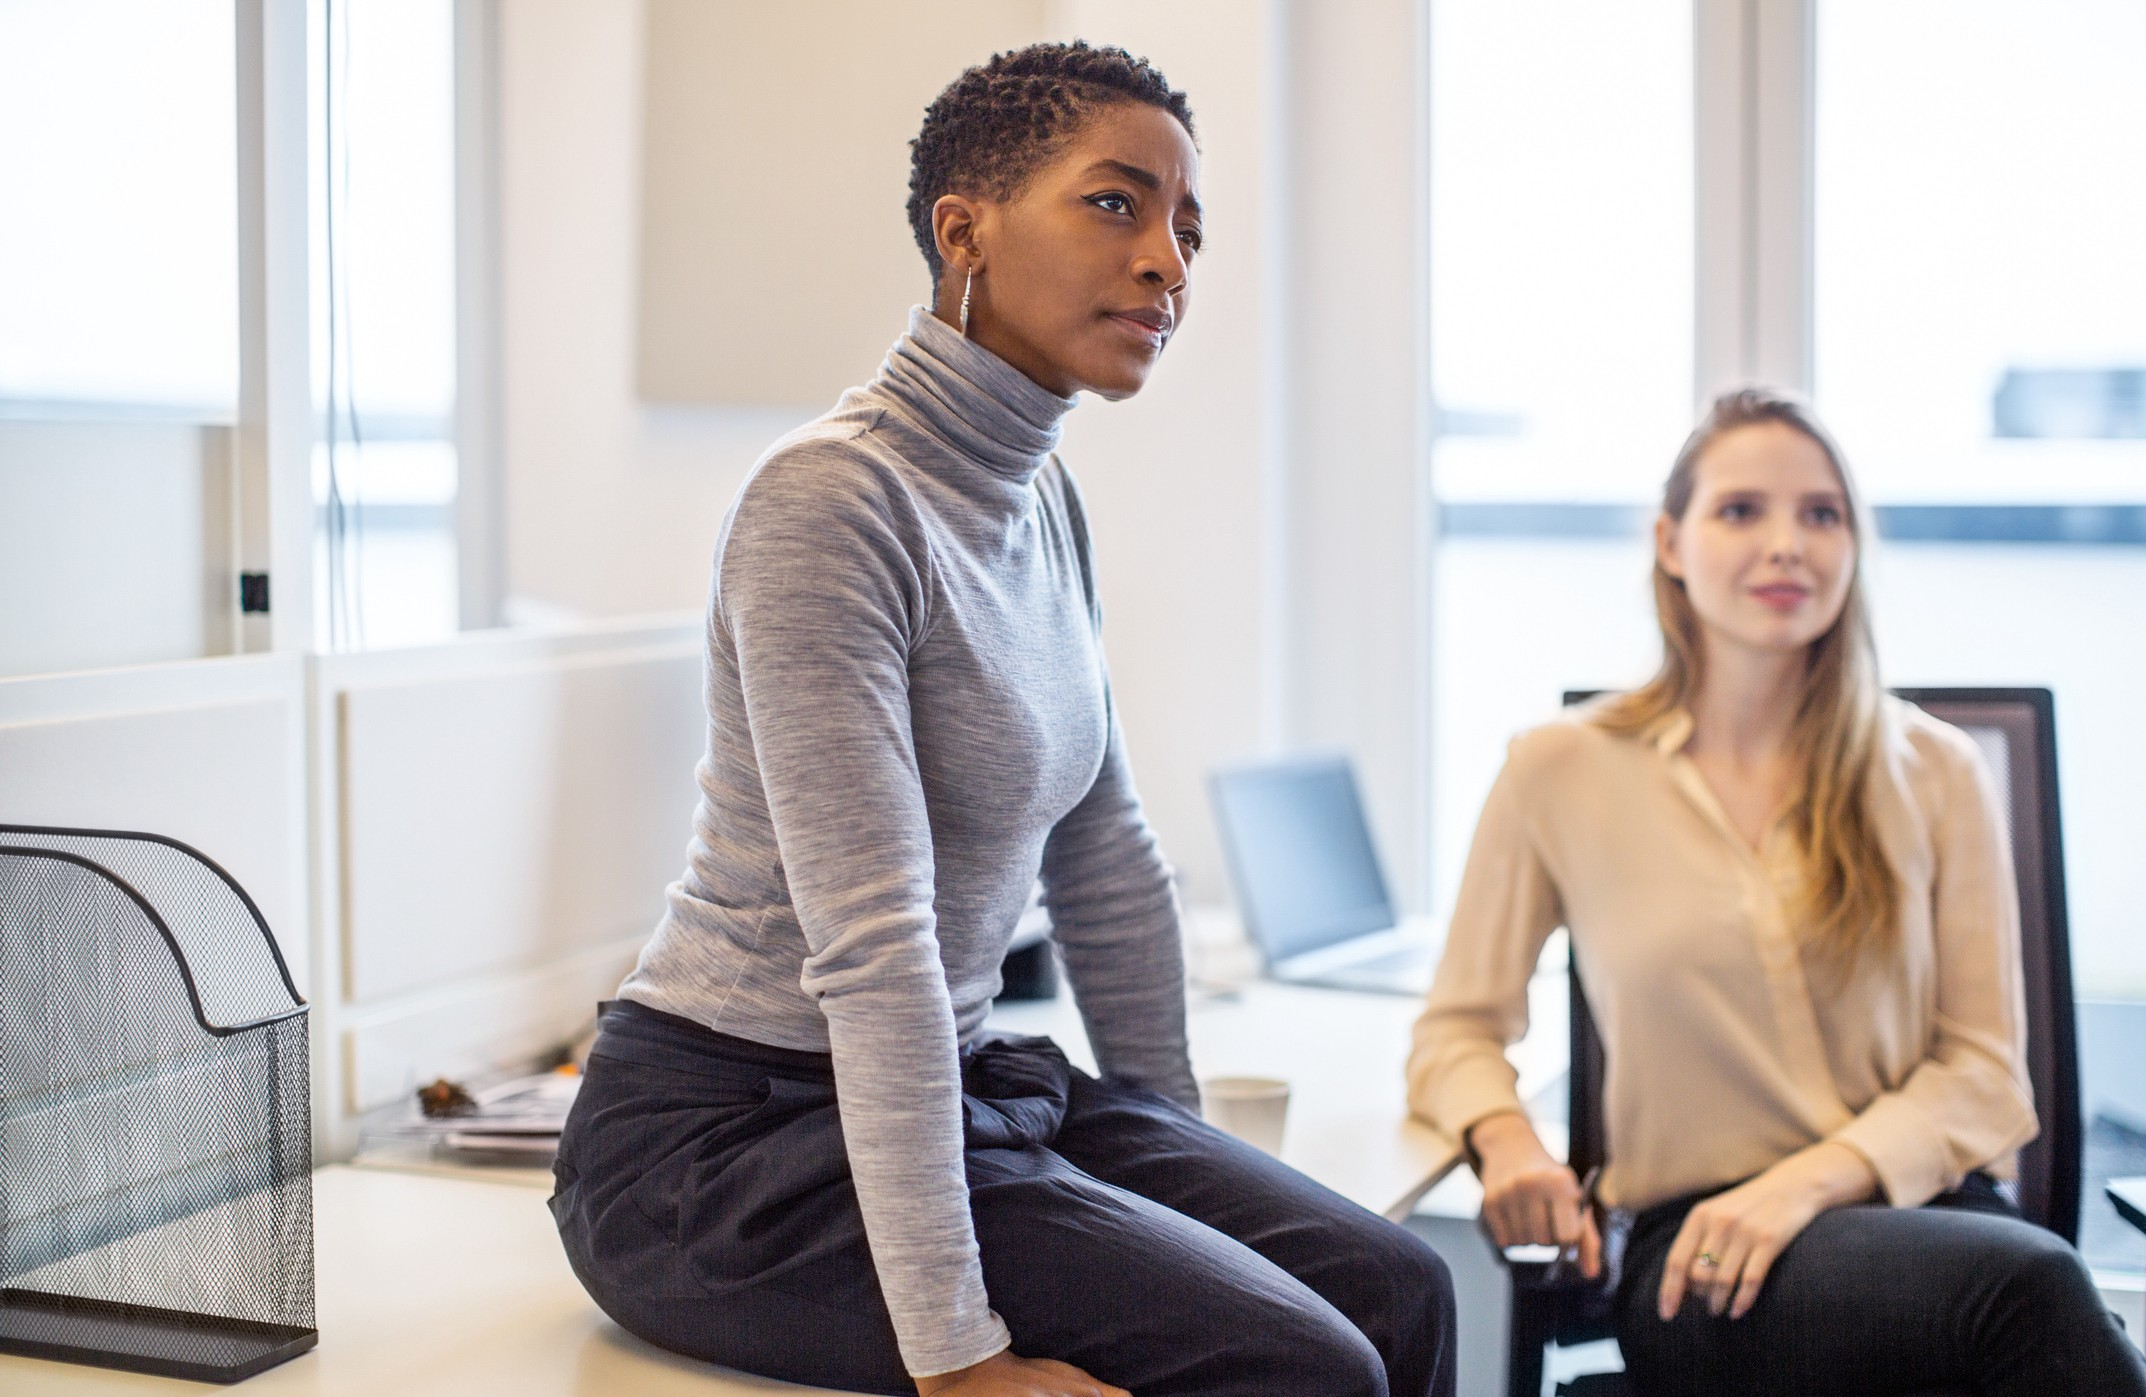 A photo of a black woman in a work meeting with a perplexed expression.